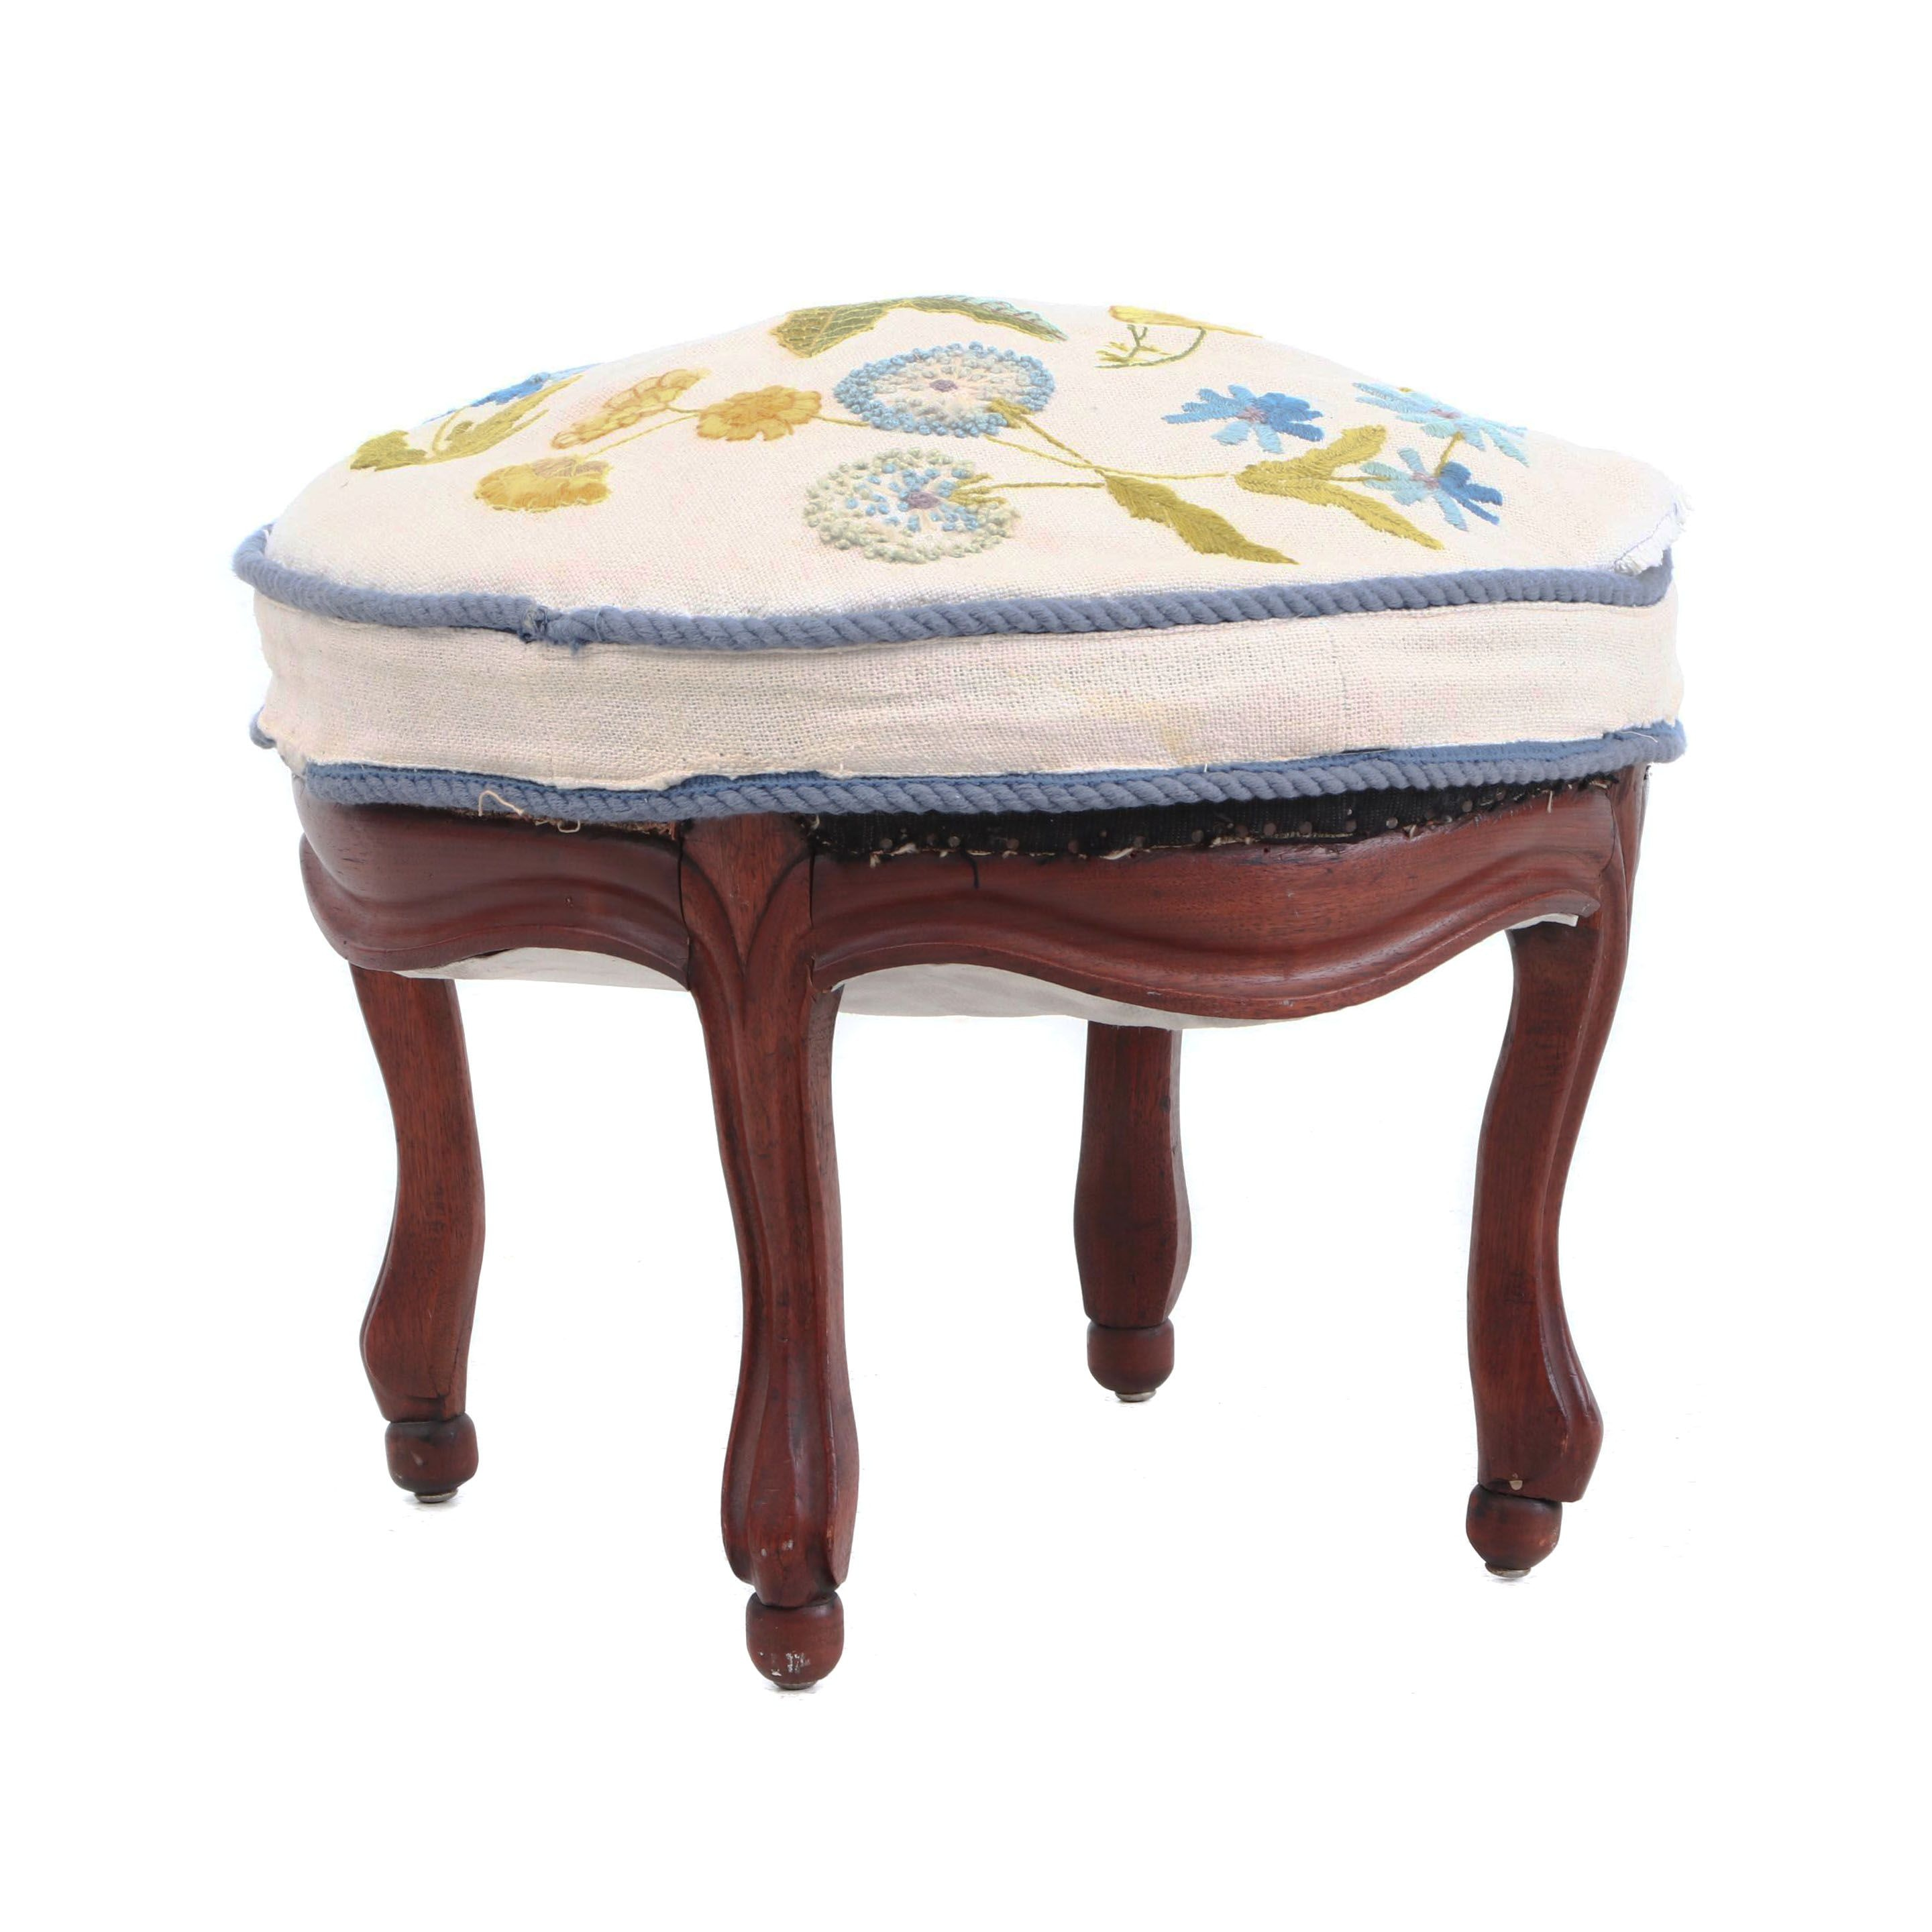 Victorian Walnut Ottoman with Embroidered Seat